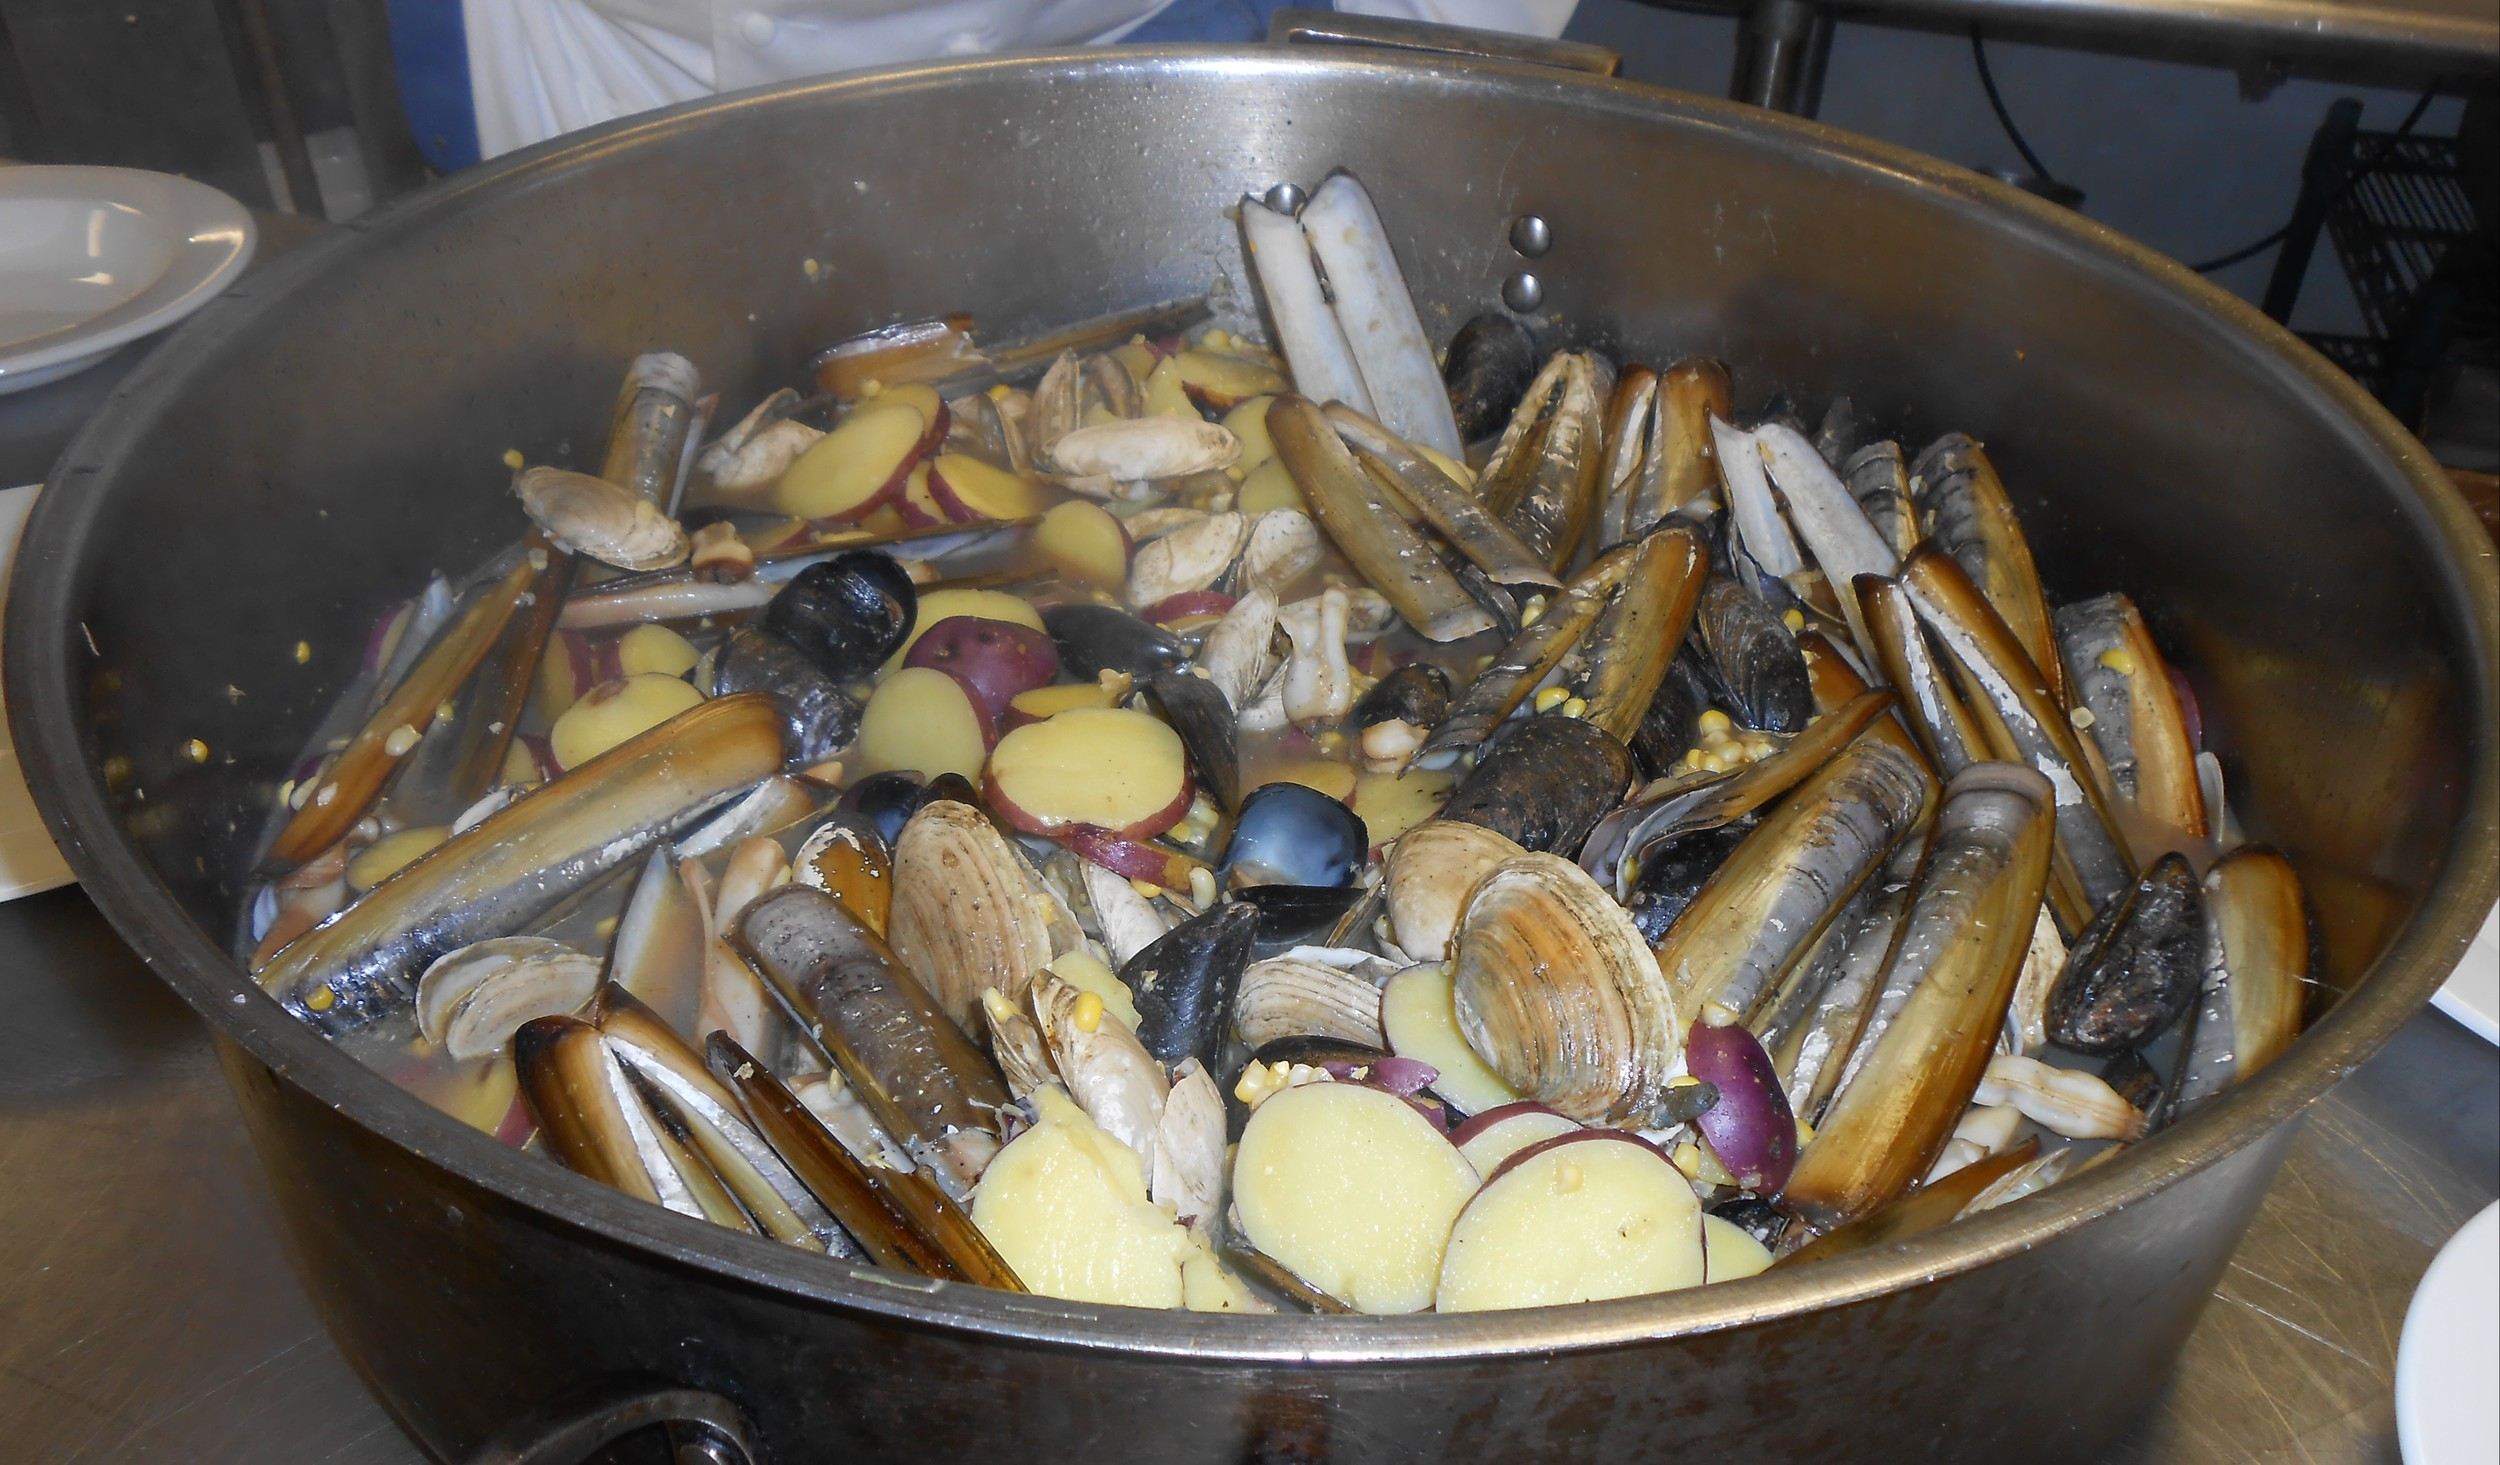 Steamers, Razor Clams and Mussels with Verrill Farm Sweet Corn, Potatoes and Pigs Ear Brown Ale